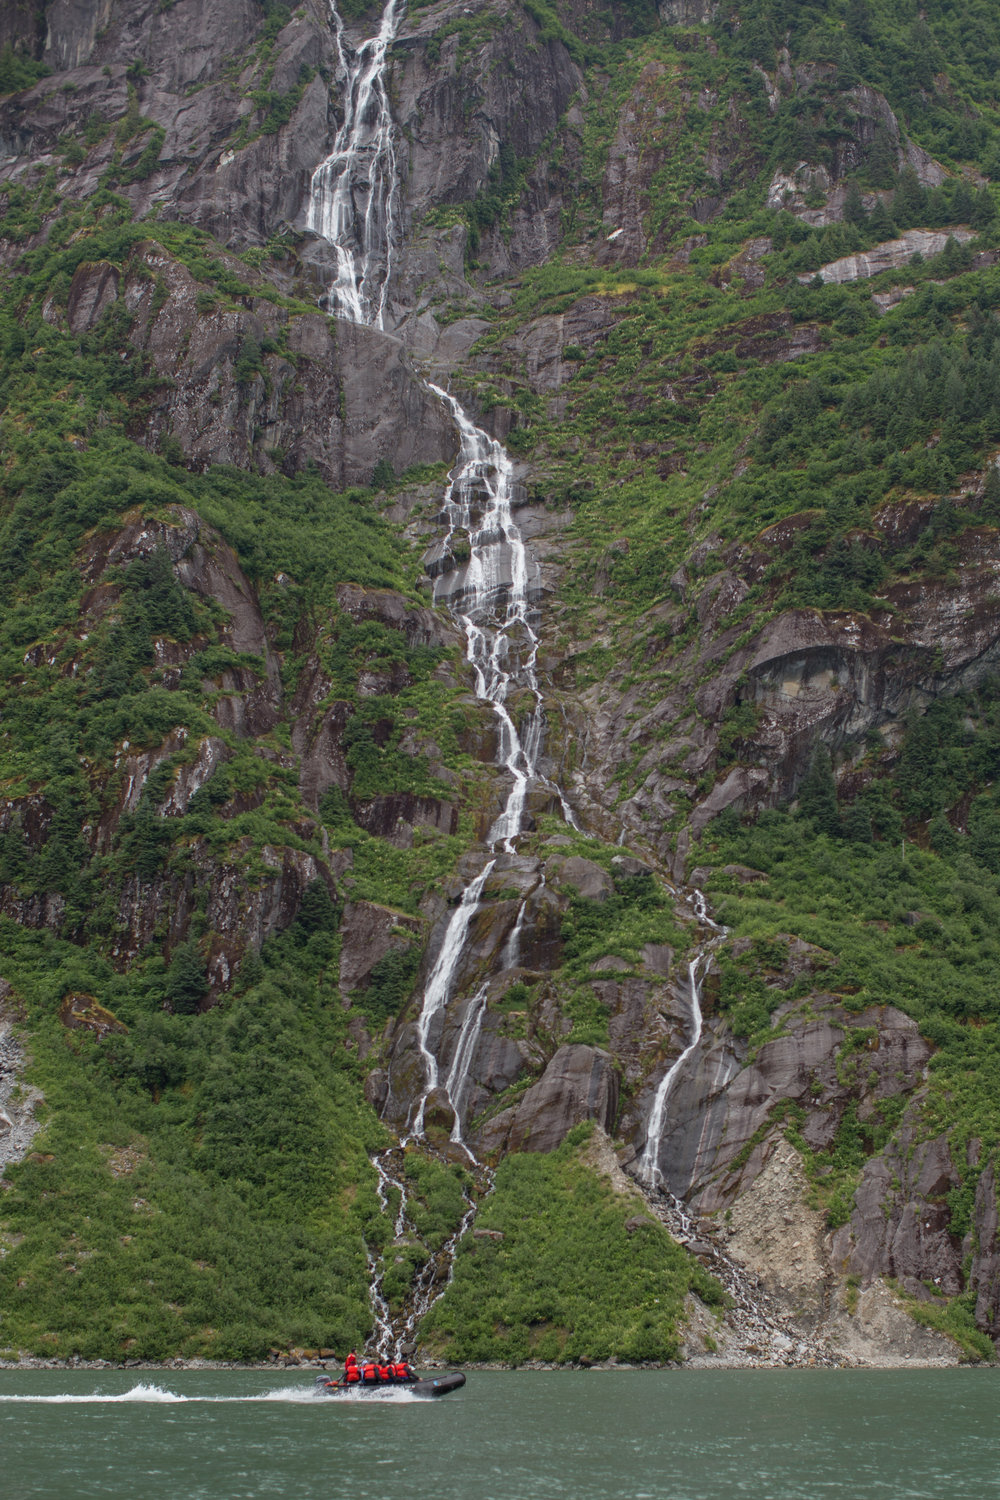 Exploring the fjords and waterfalls of Alaska's Inside Passage in small groups by zodiaks.